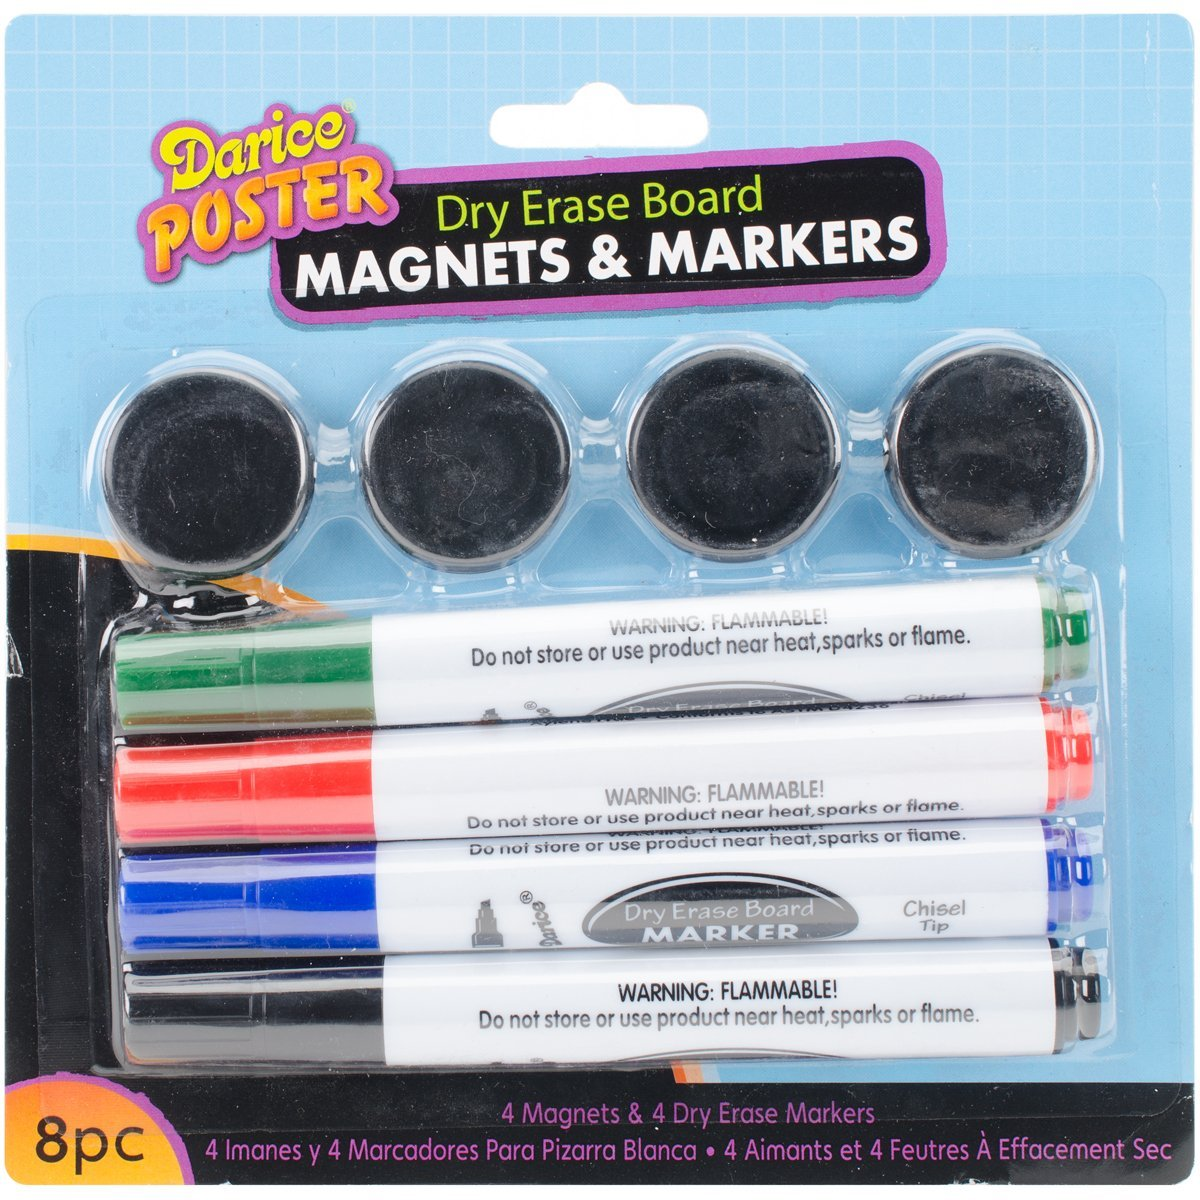 8-Piece White Board Marker and Magnet Set, White Board Marker and Magnet Set - 8 pieces By Darice